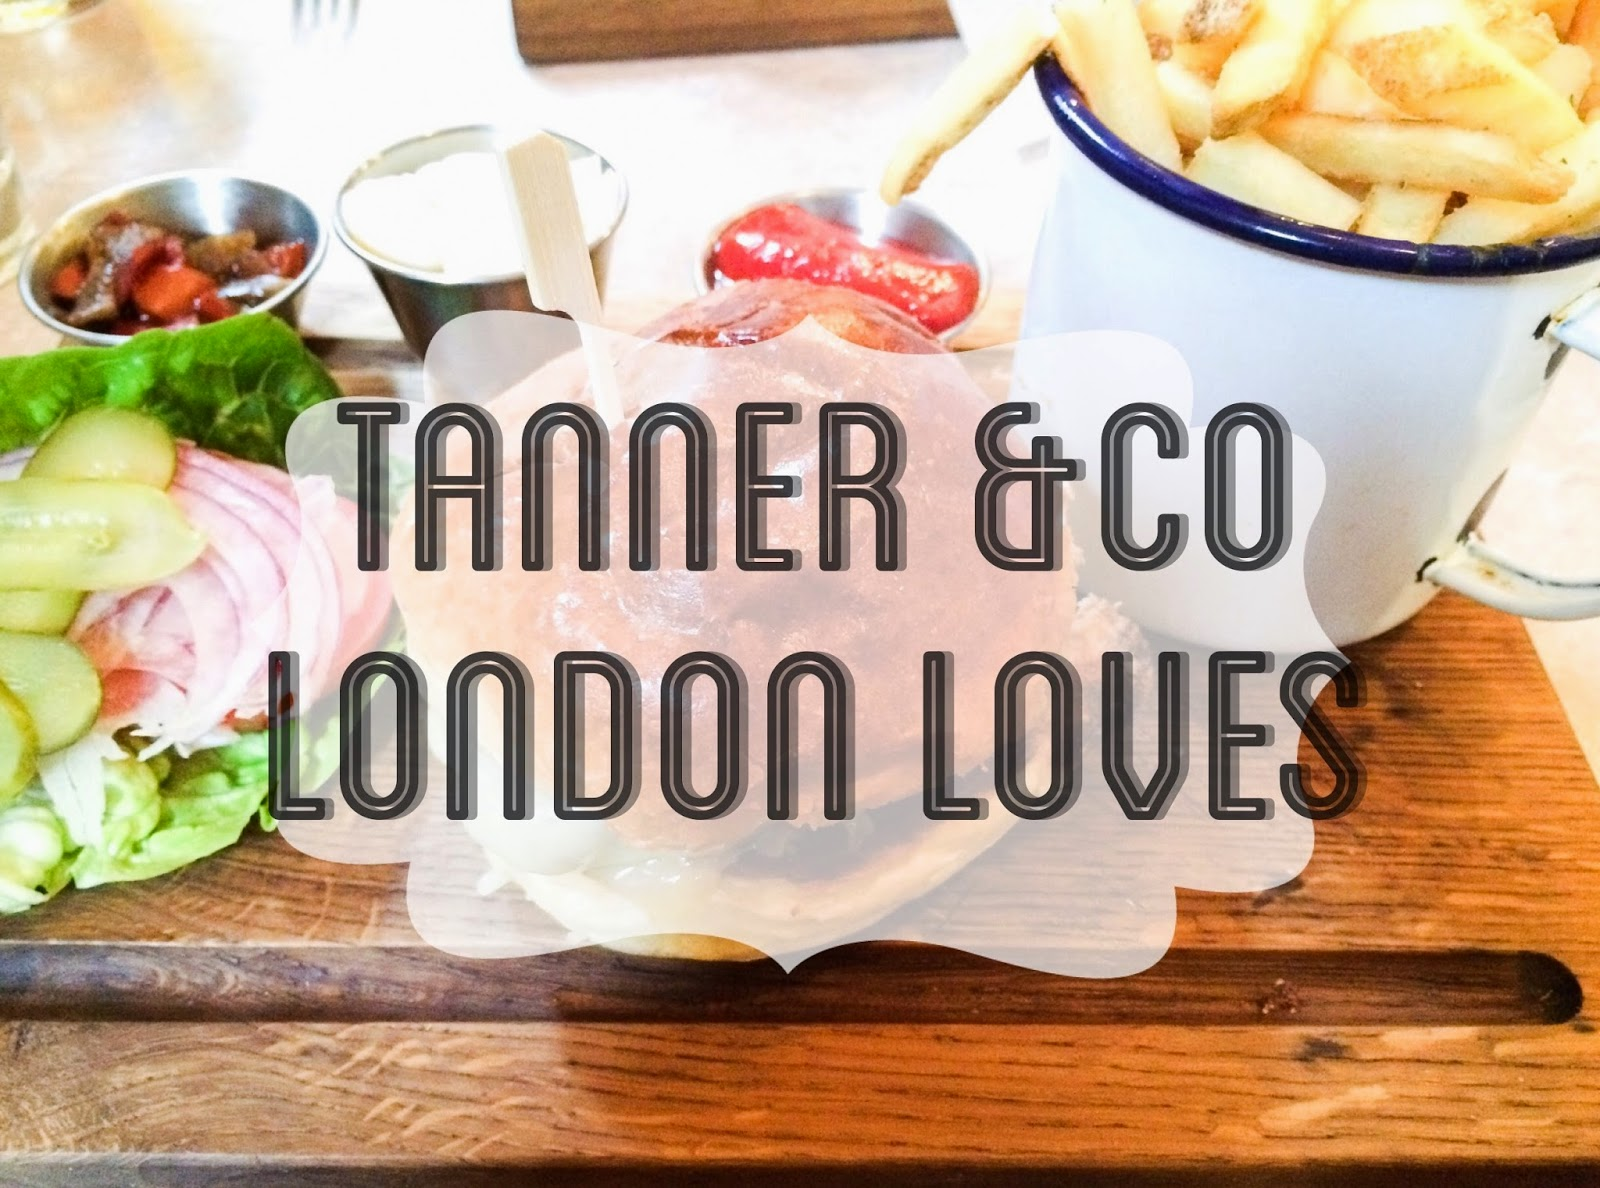 Tanner & Co, Bermondsey Street Review